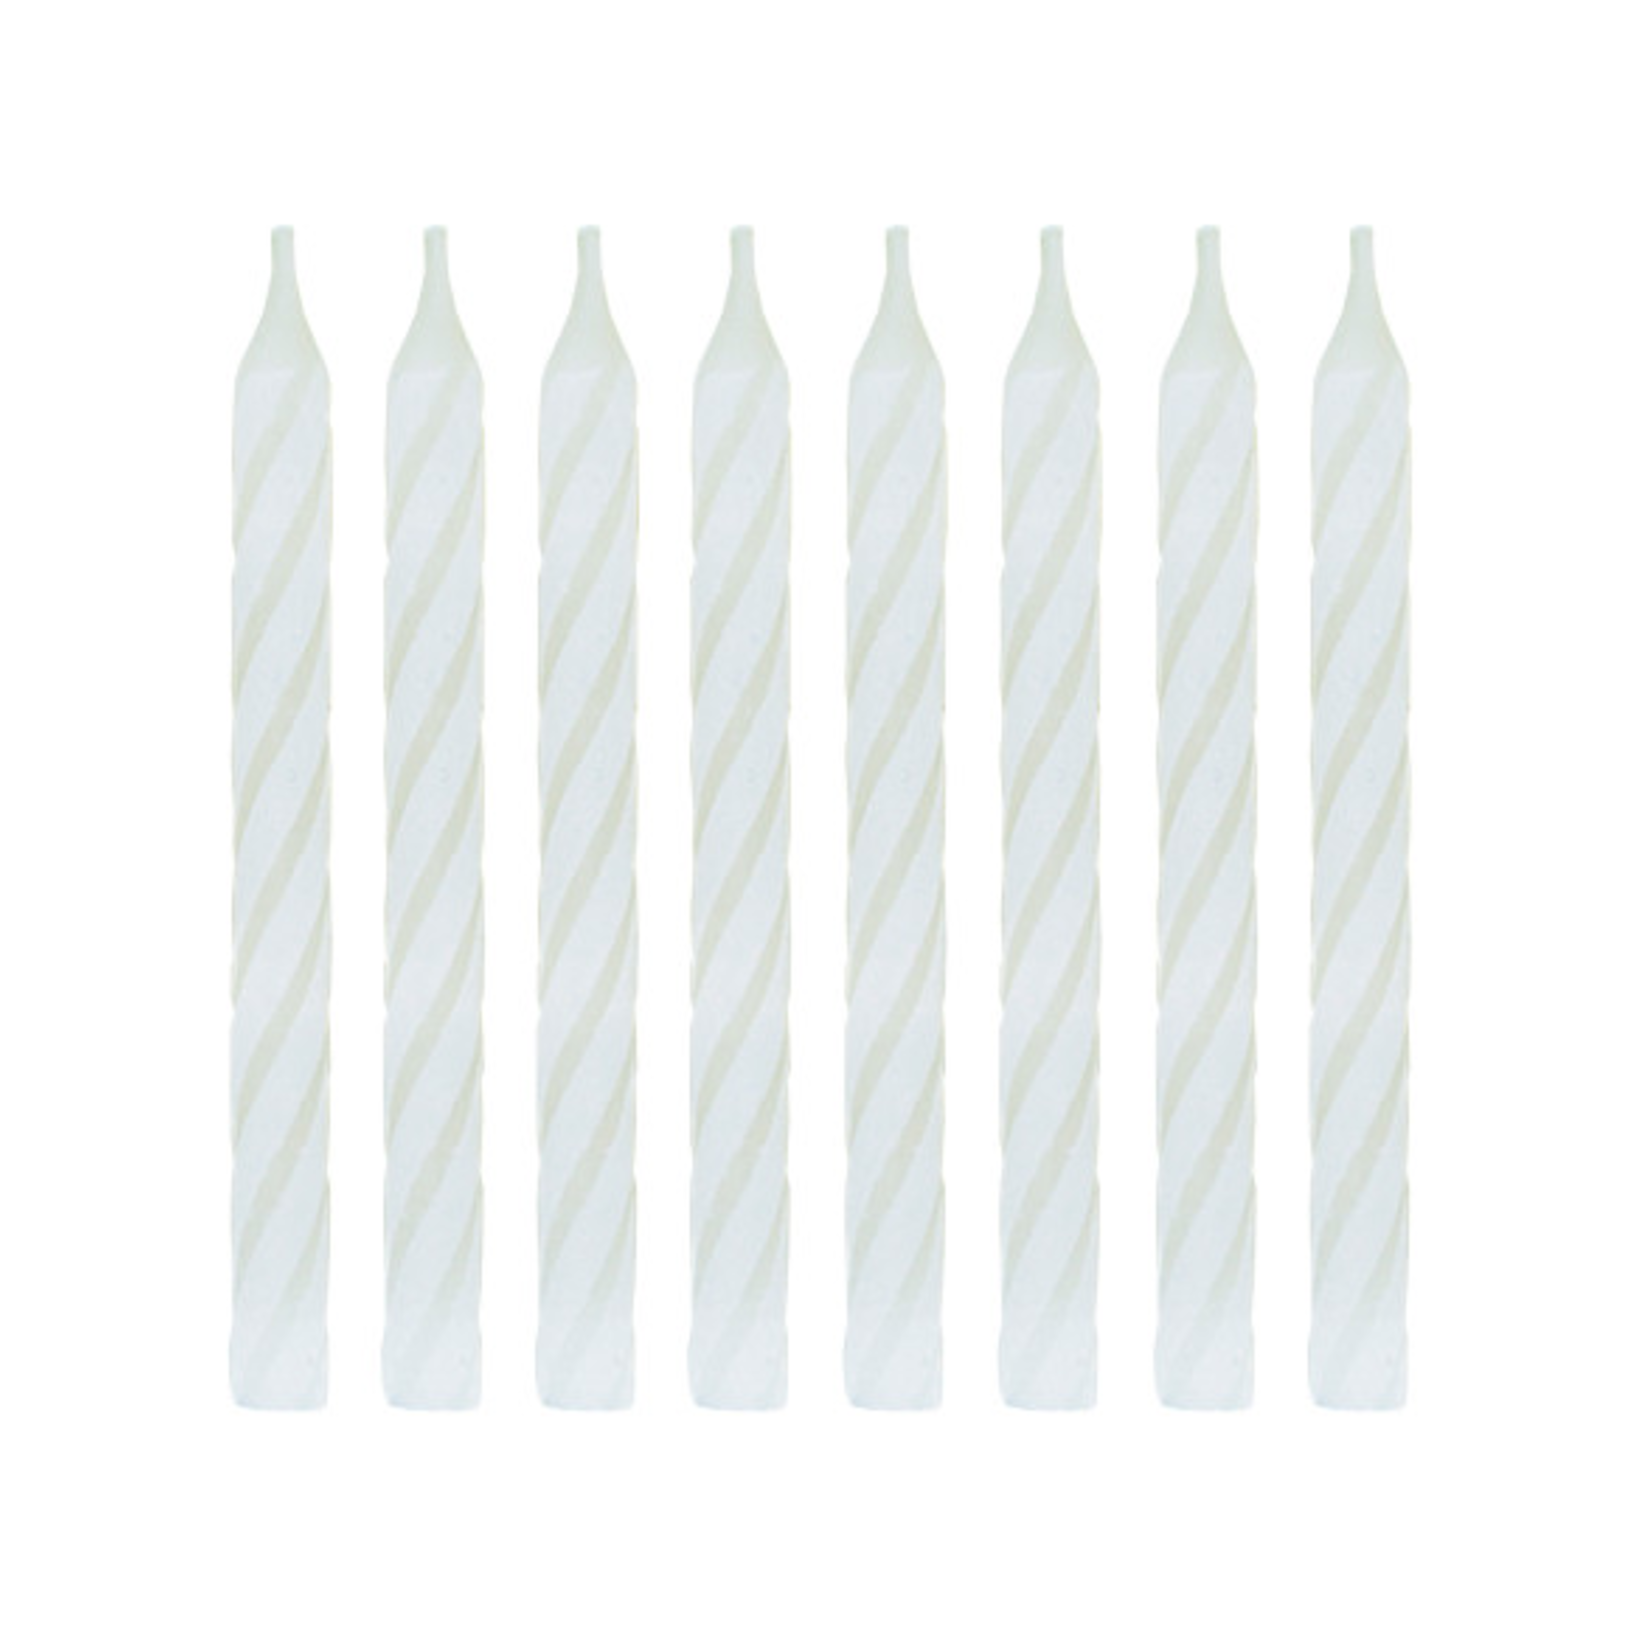 24 SPIRAL BD CANDLE, WHITE